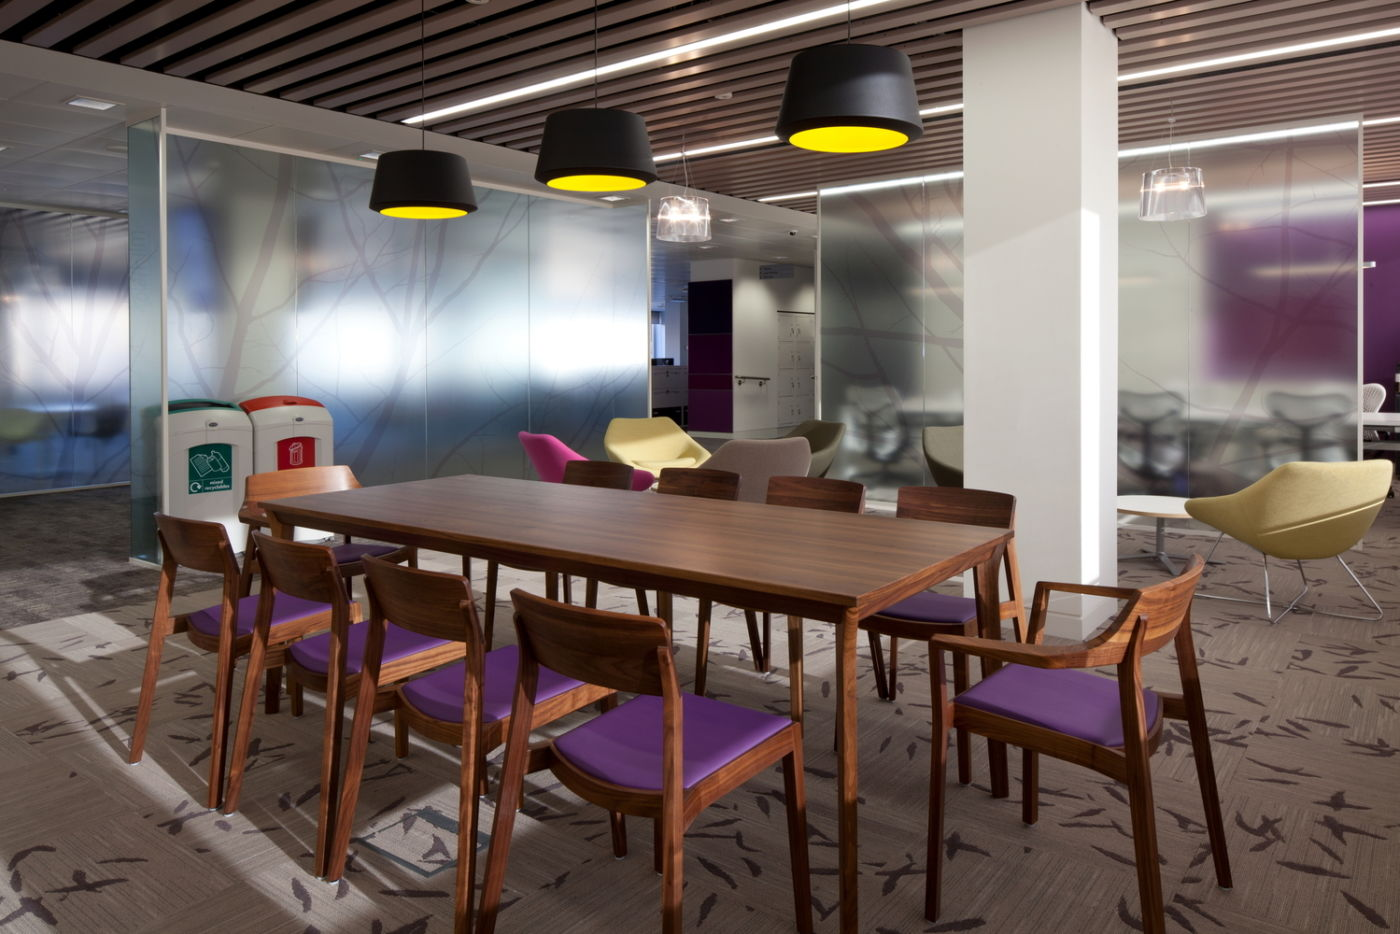 Table in office breakout area with dark wood finishing